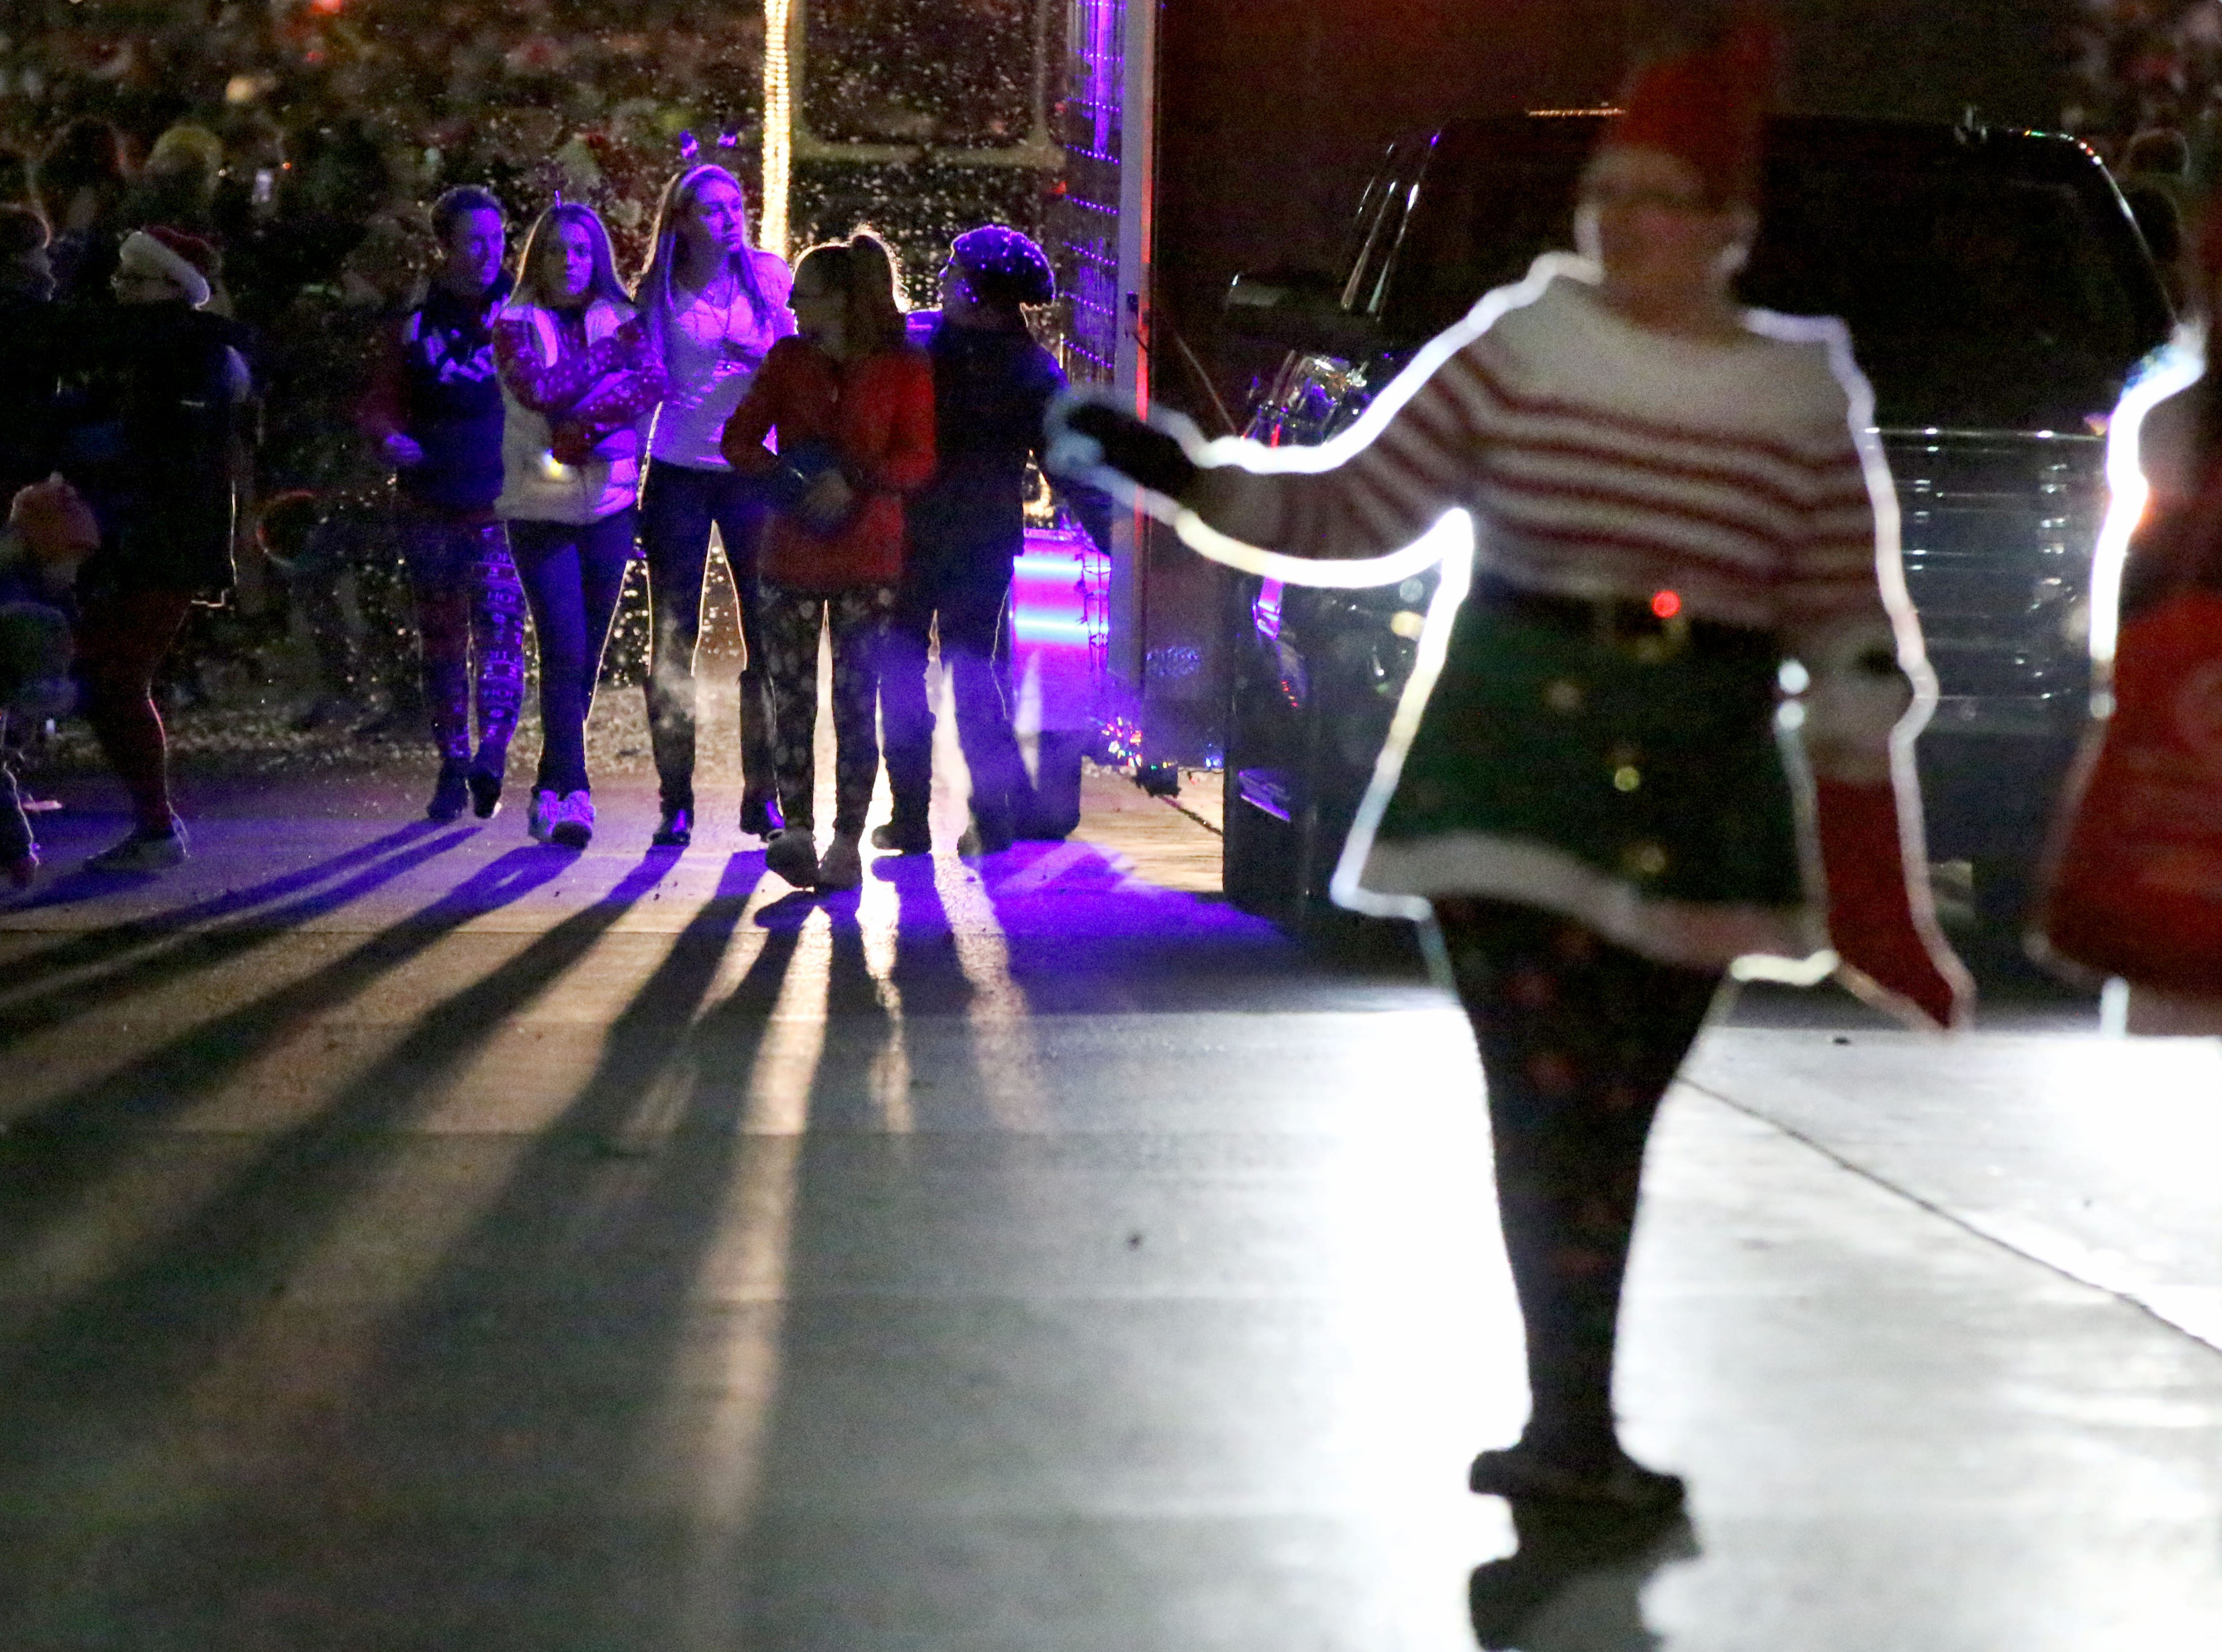 Lights of all colors illuminate people at the Plymouth Christmas Parade, Friday, November 23, 2018, in Plymouth, Wis.